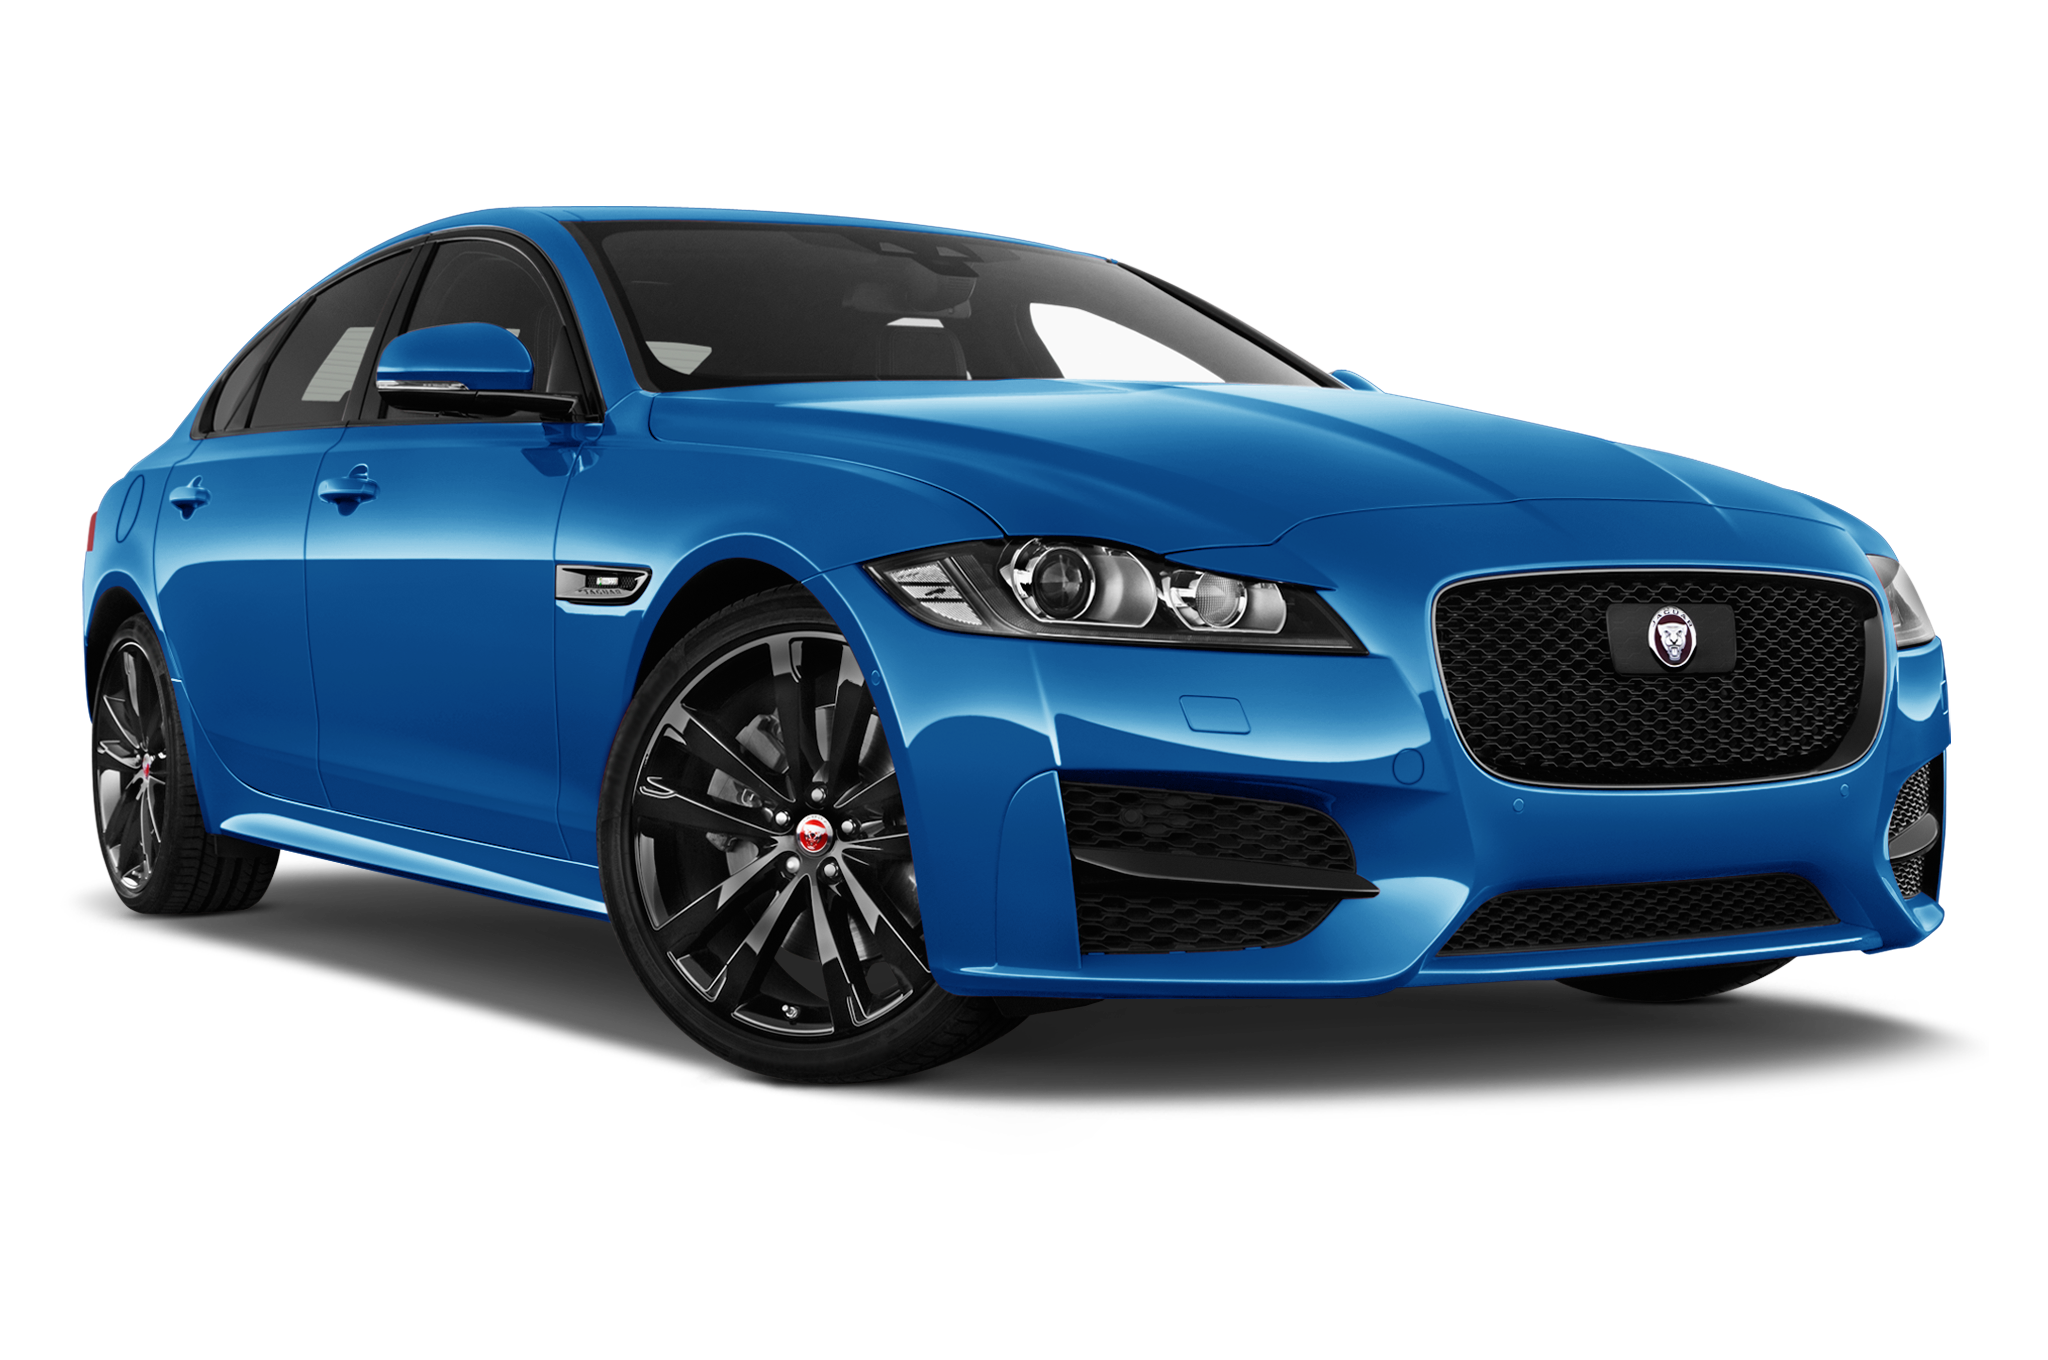 Discover our latest new Jaguar offers starting from £299 per month